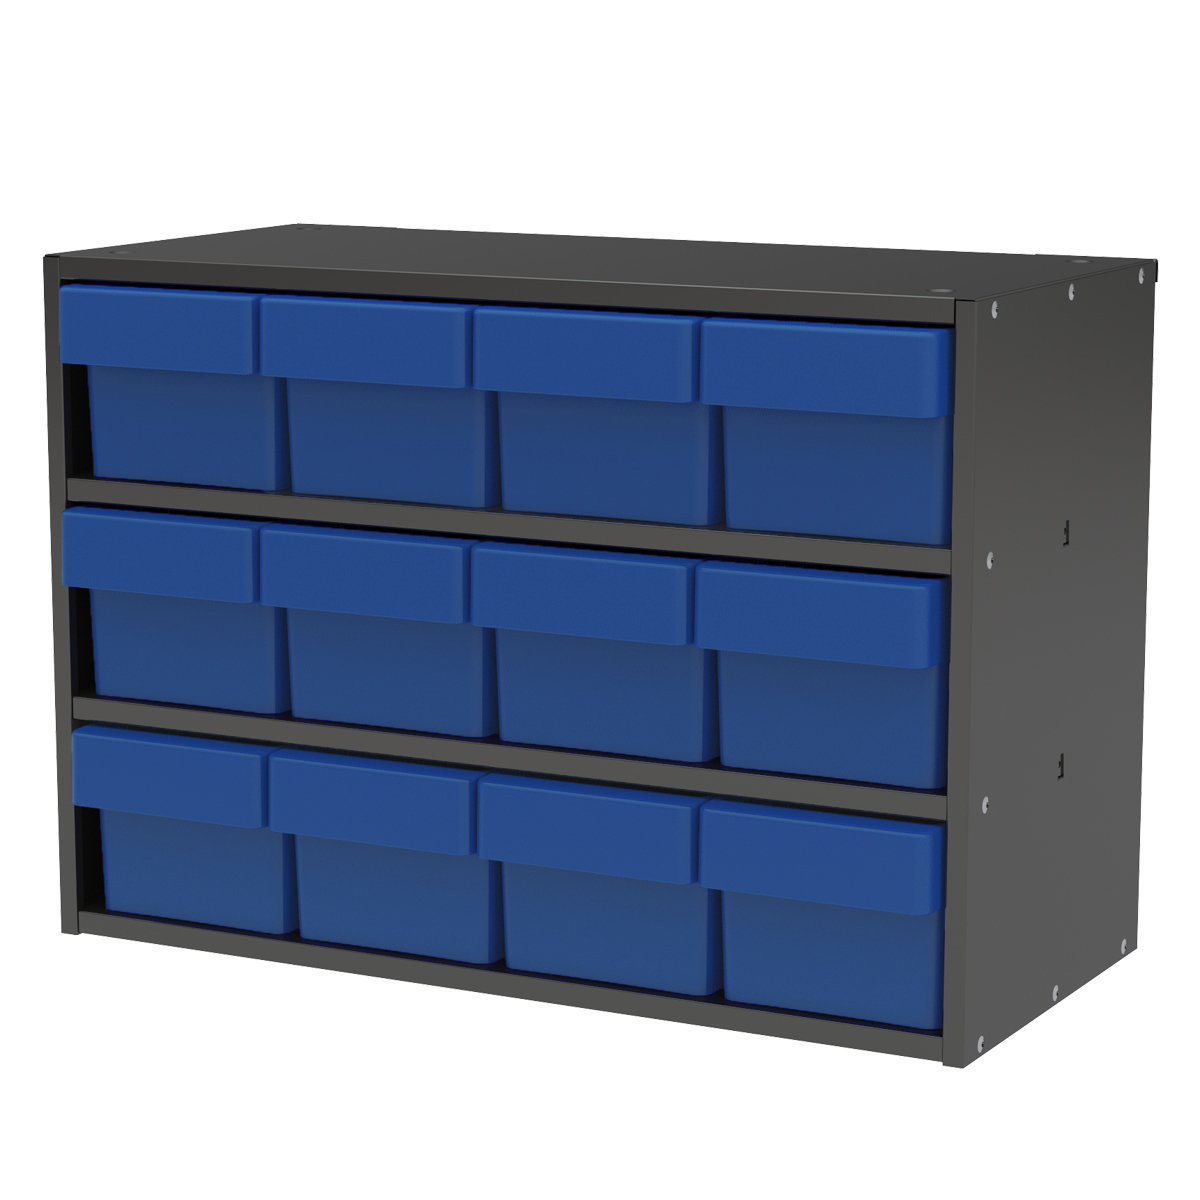 Item DISCONTINUED by Manufacturer.  Modular Cabinet, 23x11x16, 12 Drawers, Gray/Blue (AD2311C62BLU).  This item sold in carton quantities of 1.